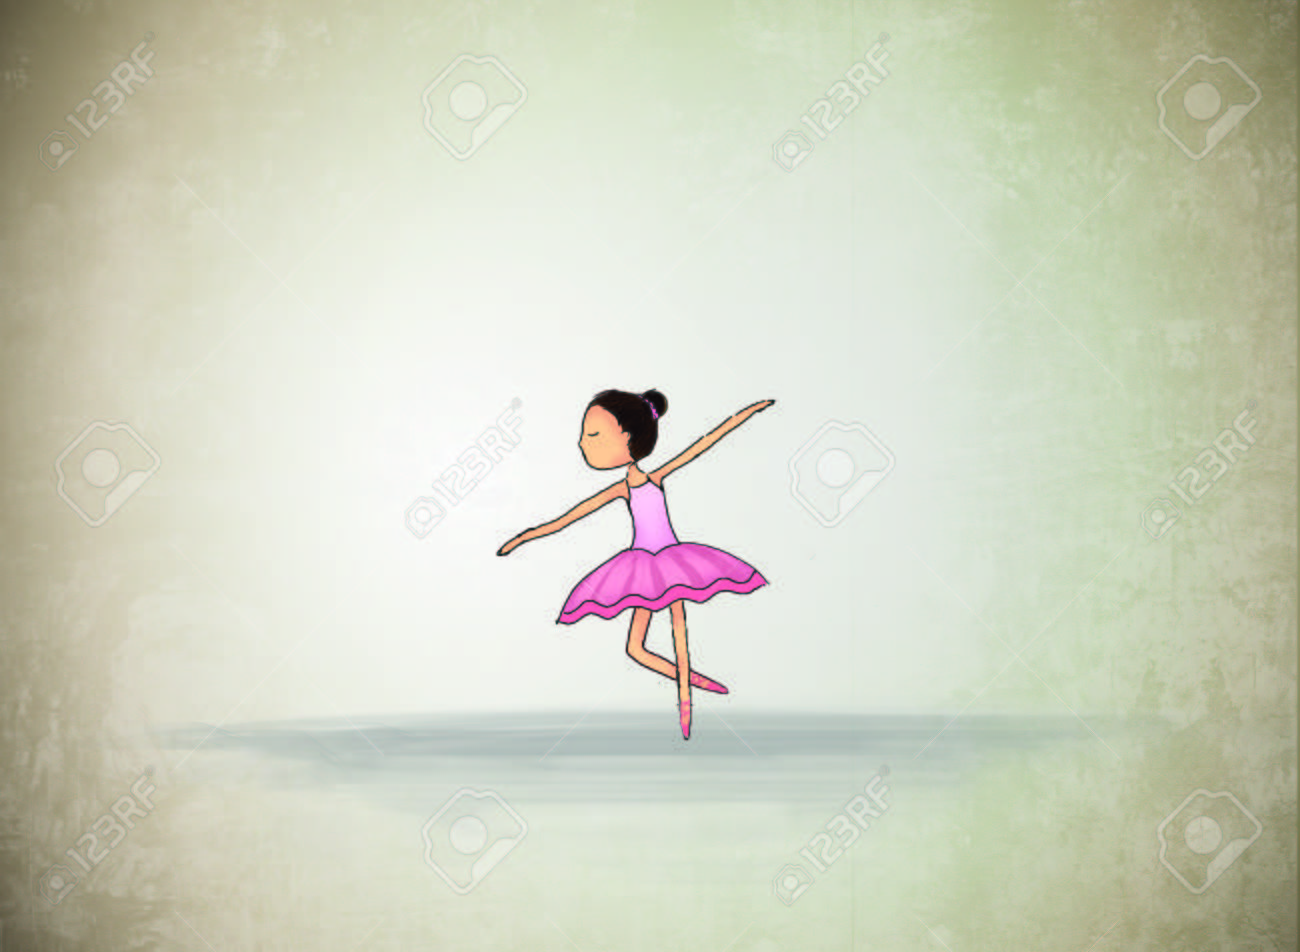 Graphic Illustration Drawing Of Lonely Ballerina Dancing Idea Stock Photo Picture And Royalty Free Image Image 85848954